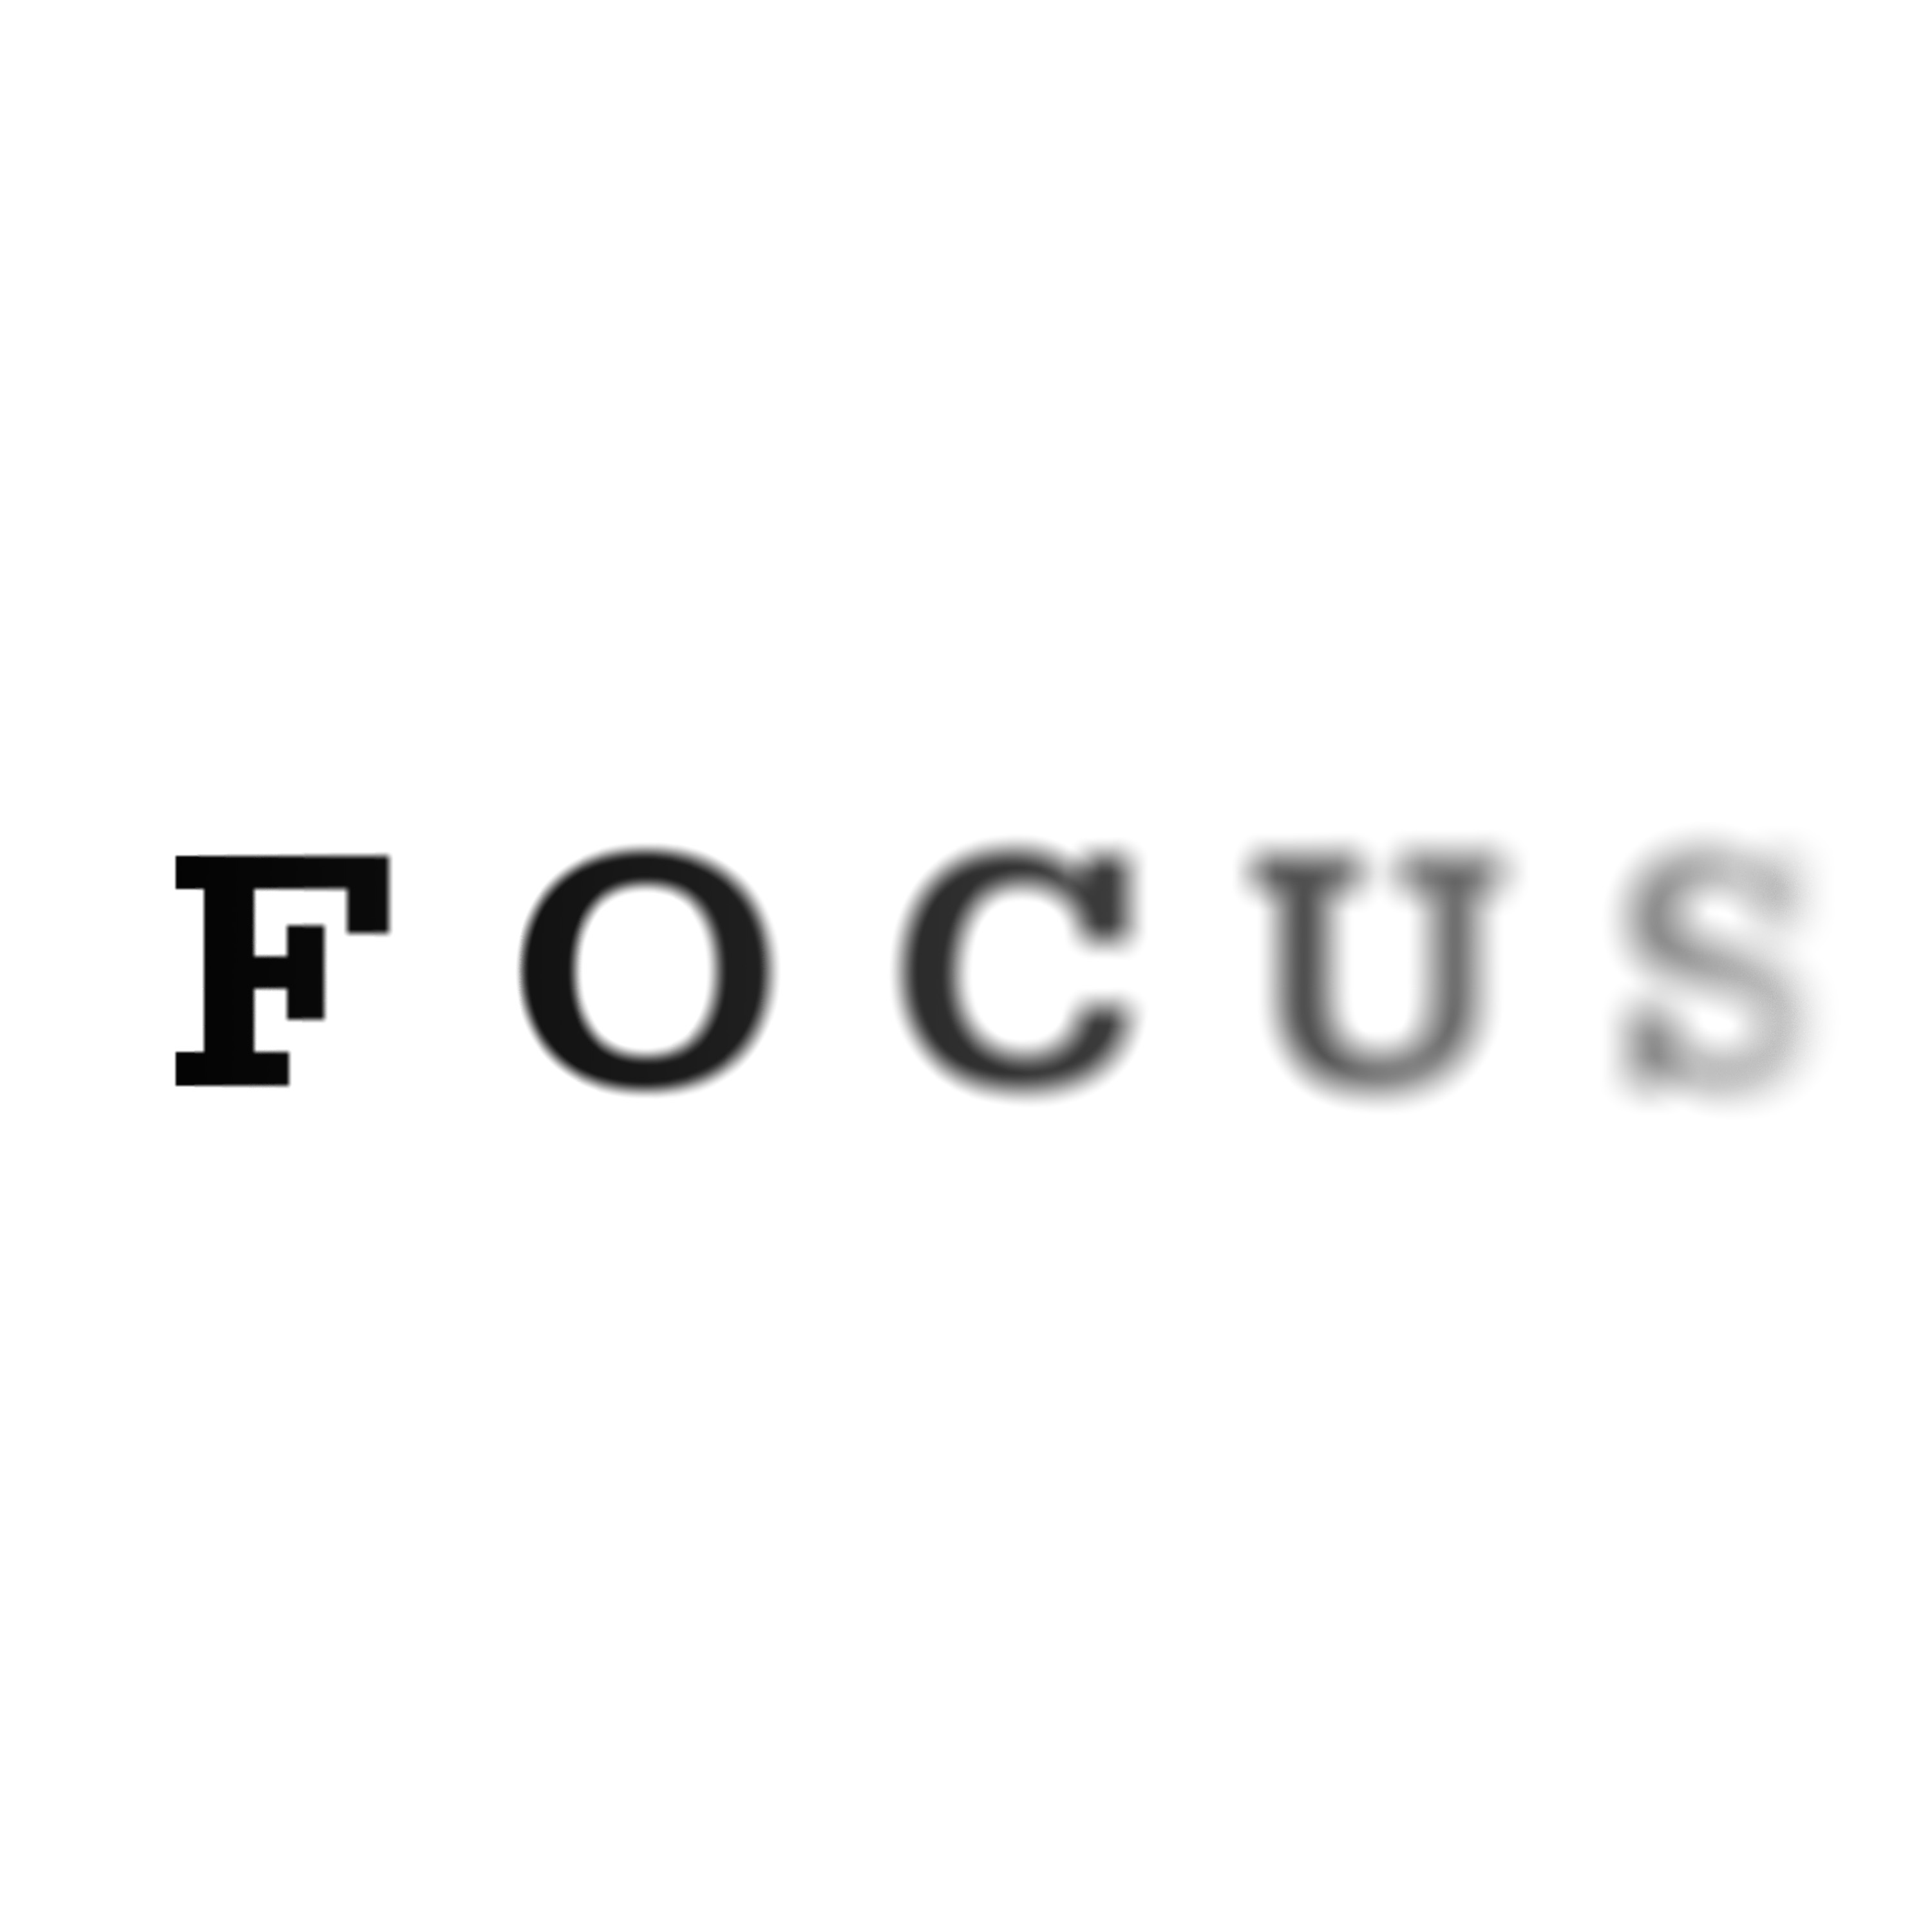 going out of focus